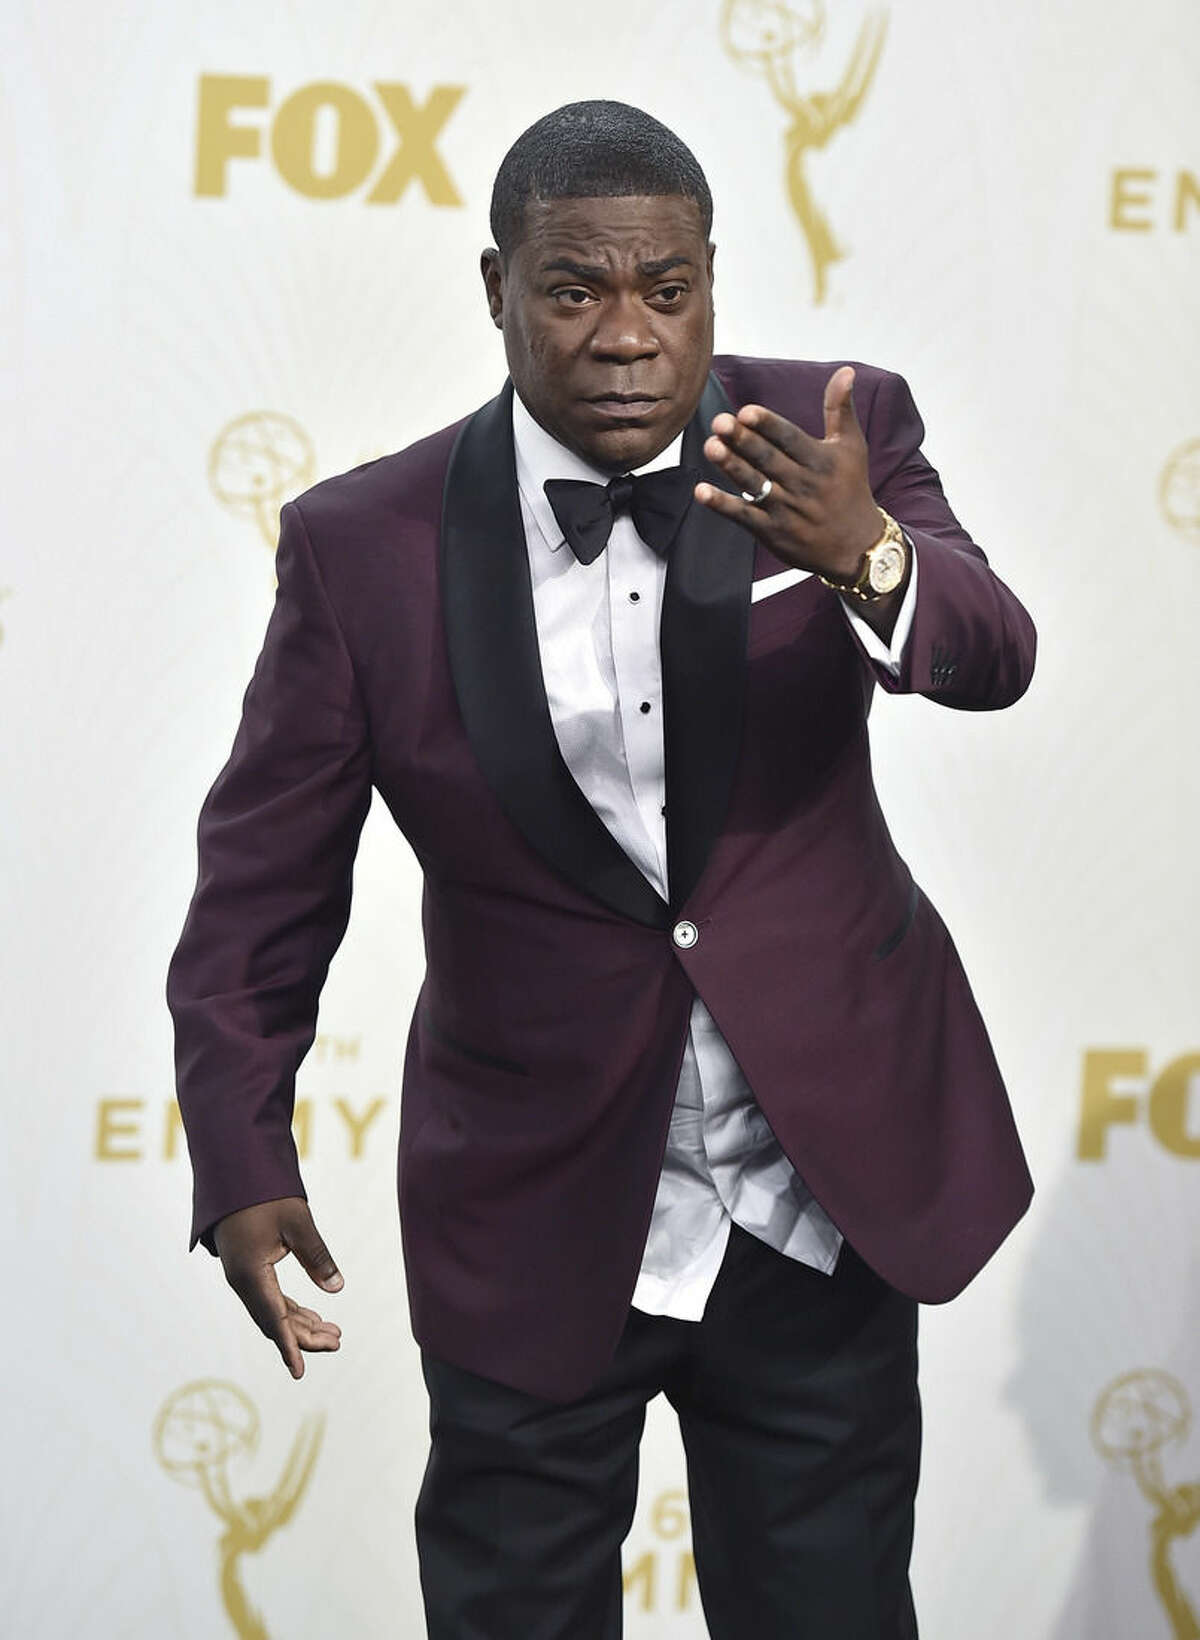 FILE - In this Sept. 20, 2015, file photo, Tracy Morgan poses in the press room at the 67th Primetime Emmy Awards in Los Angeles. Morgan will officially launch his